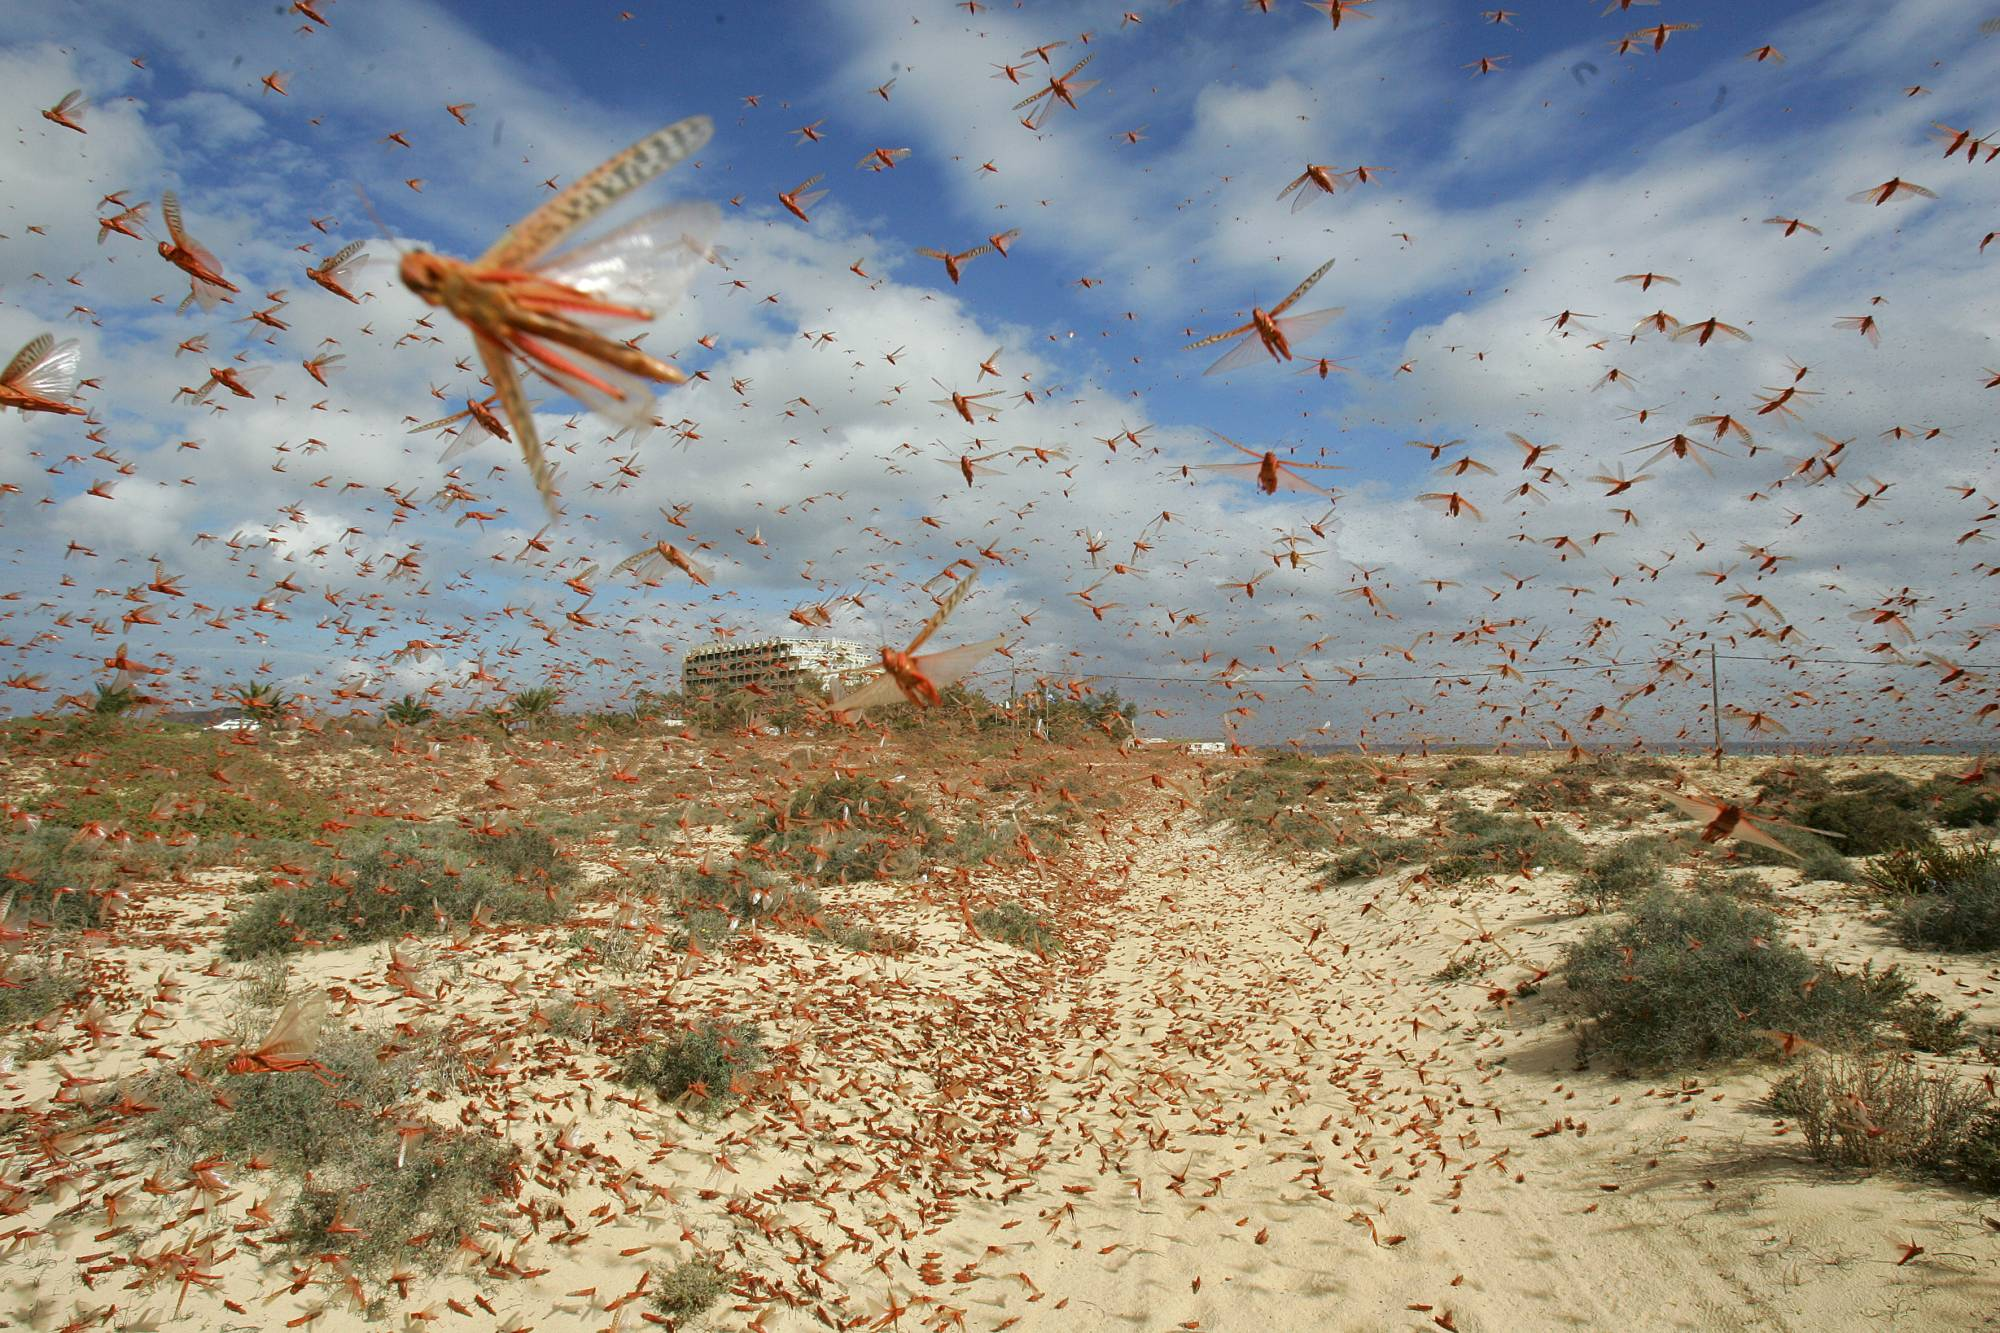 The Climate Prediction and Application Center in Nairobi says locusts are 'invading the Eastern Africa region in exceptionally large swarms like never seen before.' | REUTERS